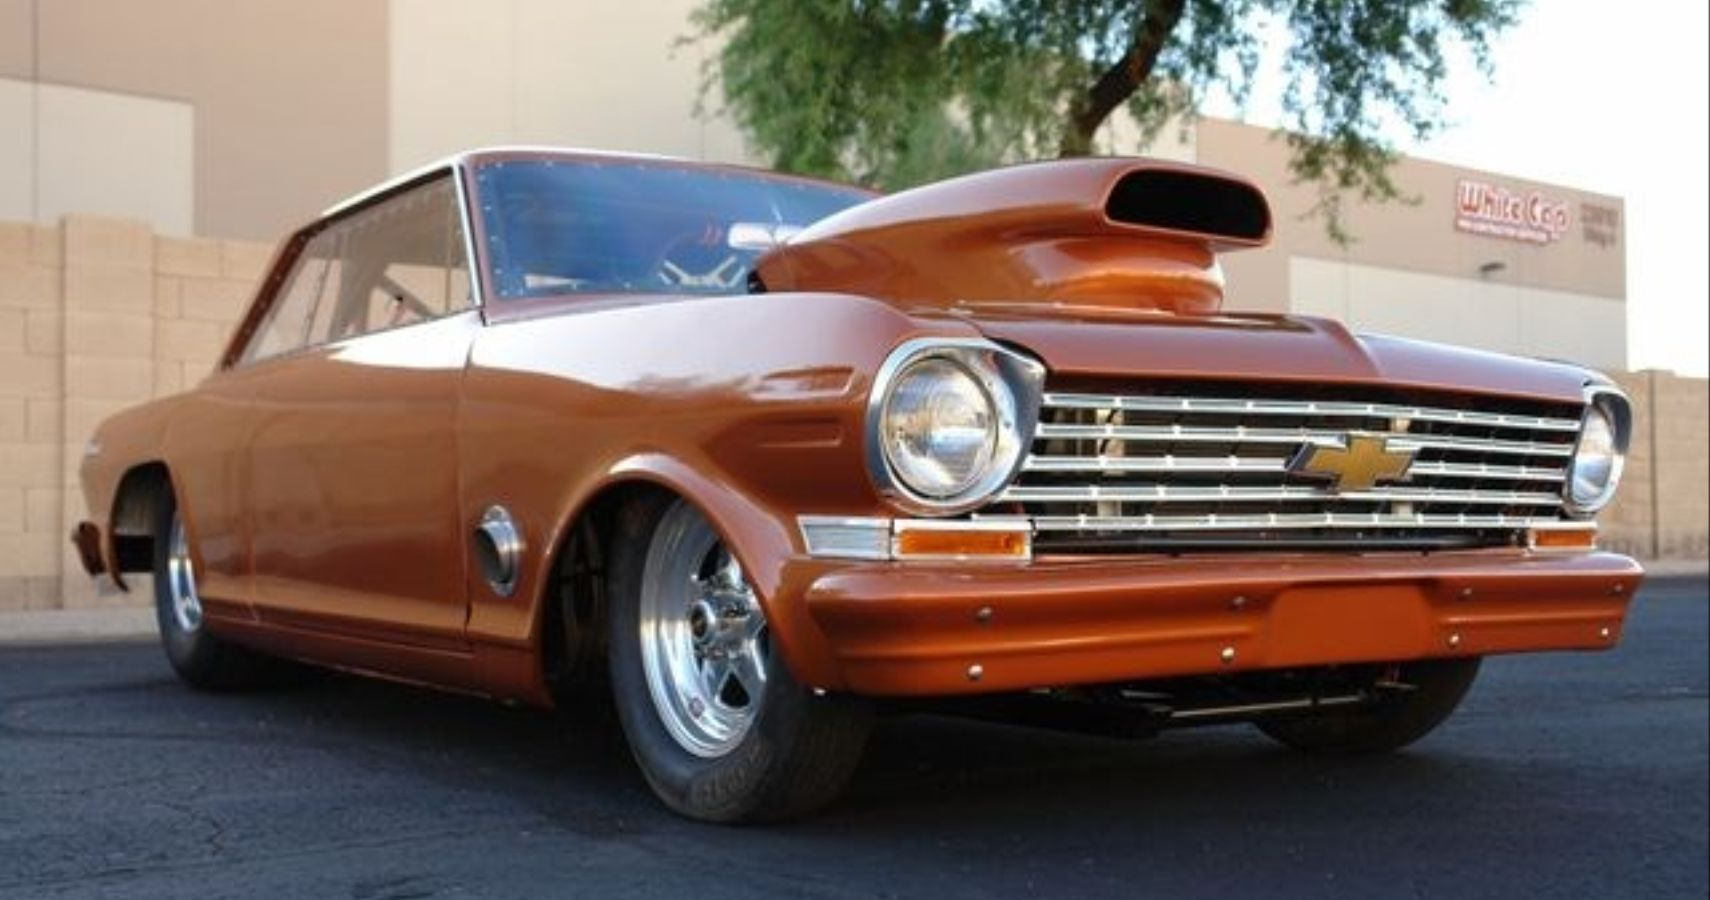 Check Out This Nitrous-Huffing Big-Block Chevy Nova Race Car